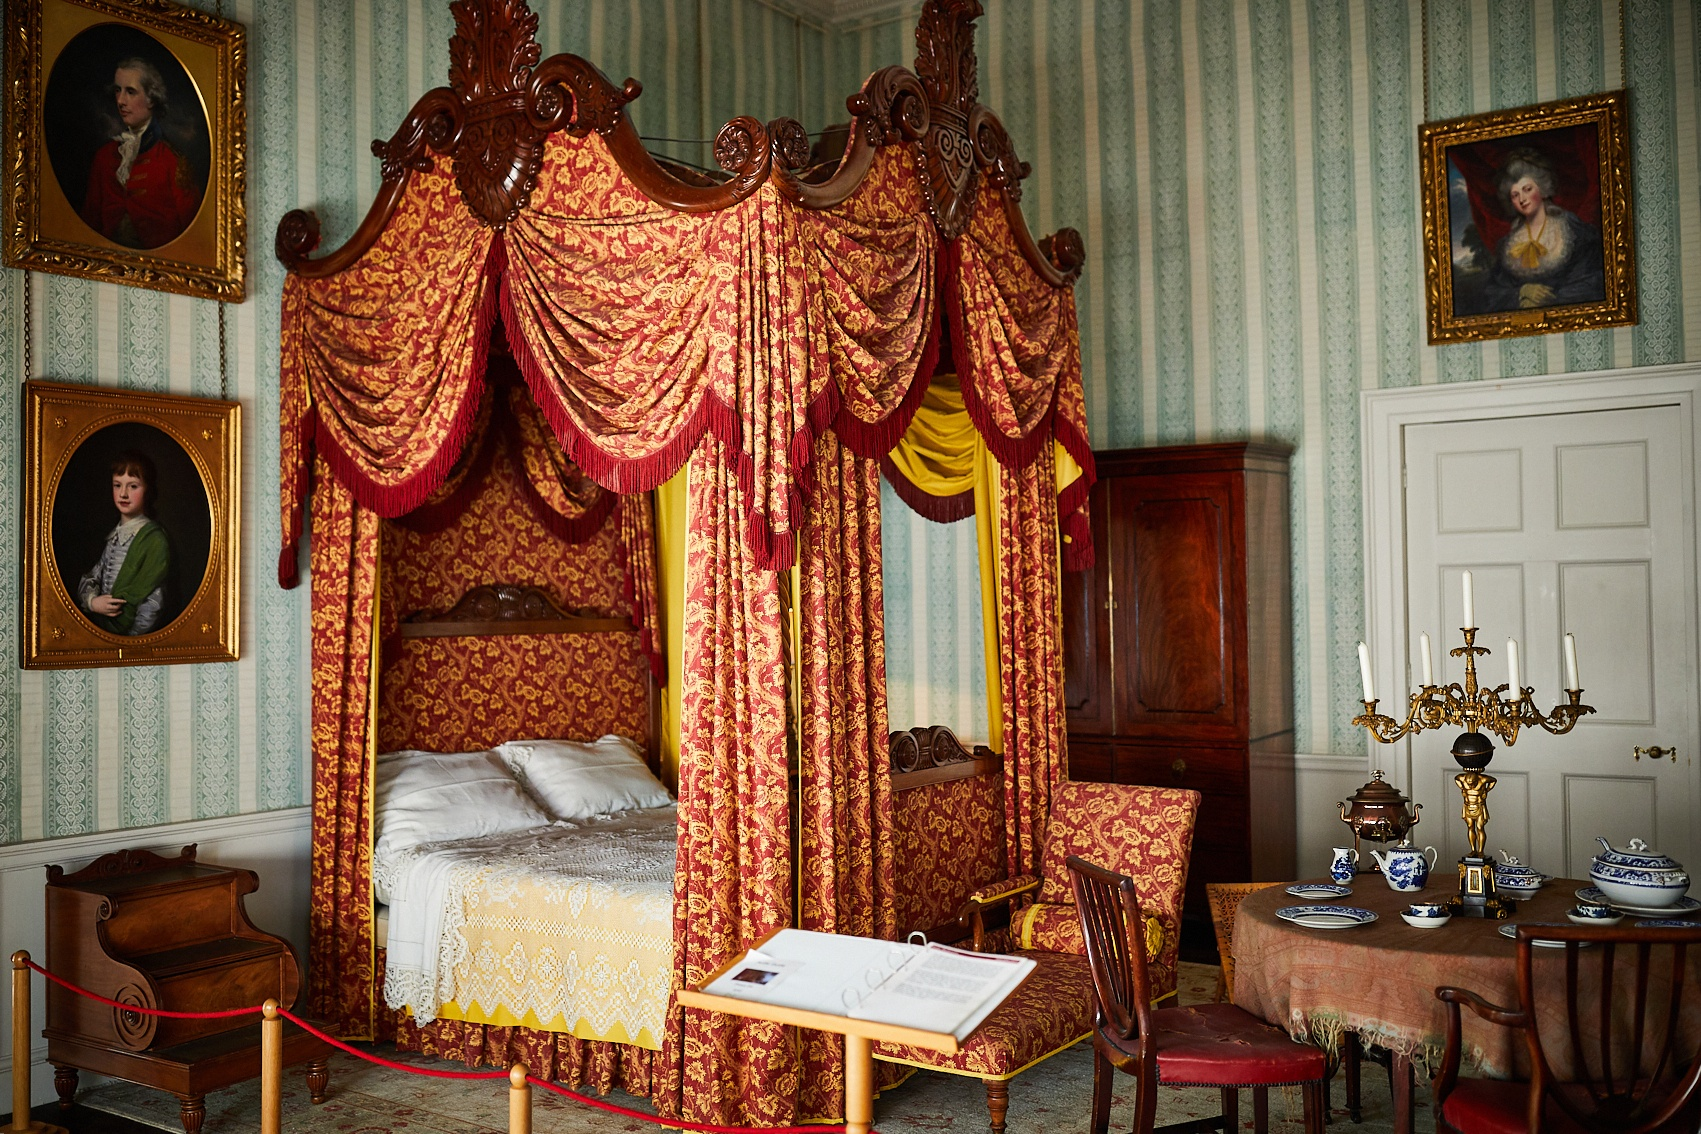 A bedroom at Temple Newsam - credit Leeds Museums and Galleries